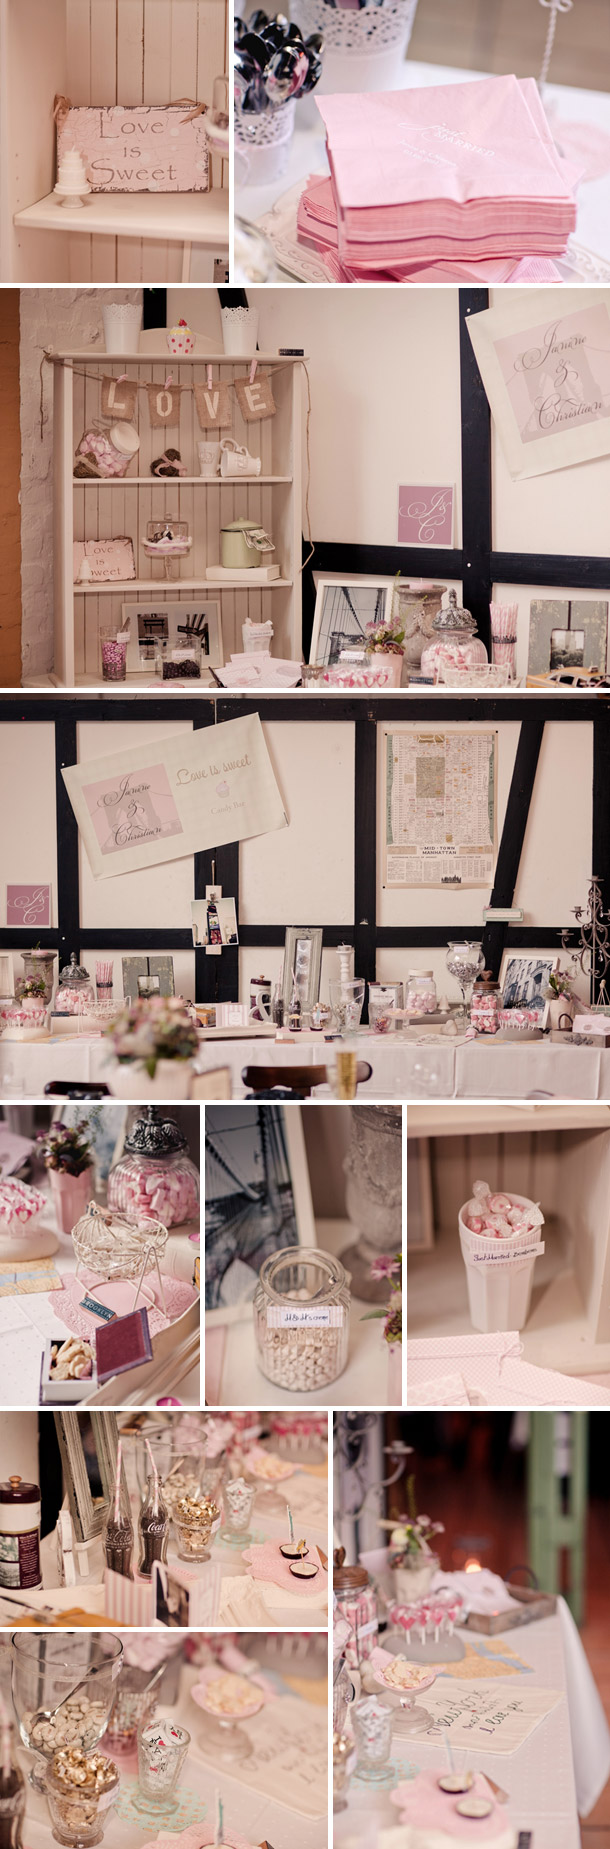 diy hochzeit im new york stil bei lene photography hochzeitswahn sei inspiriert. Black Bedroom Furniture Sets. Home Design Ideas